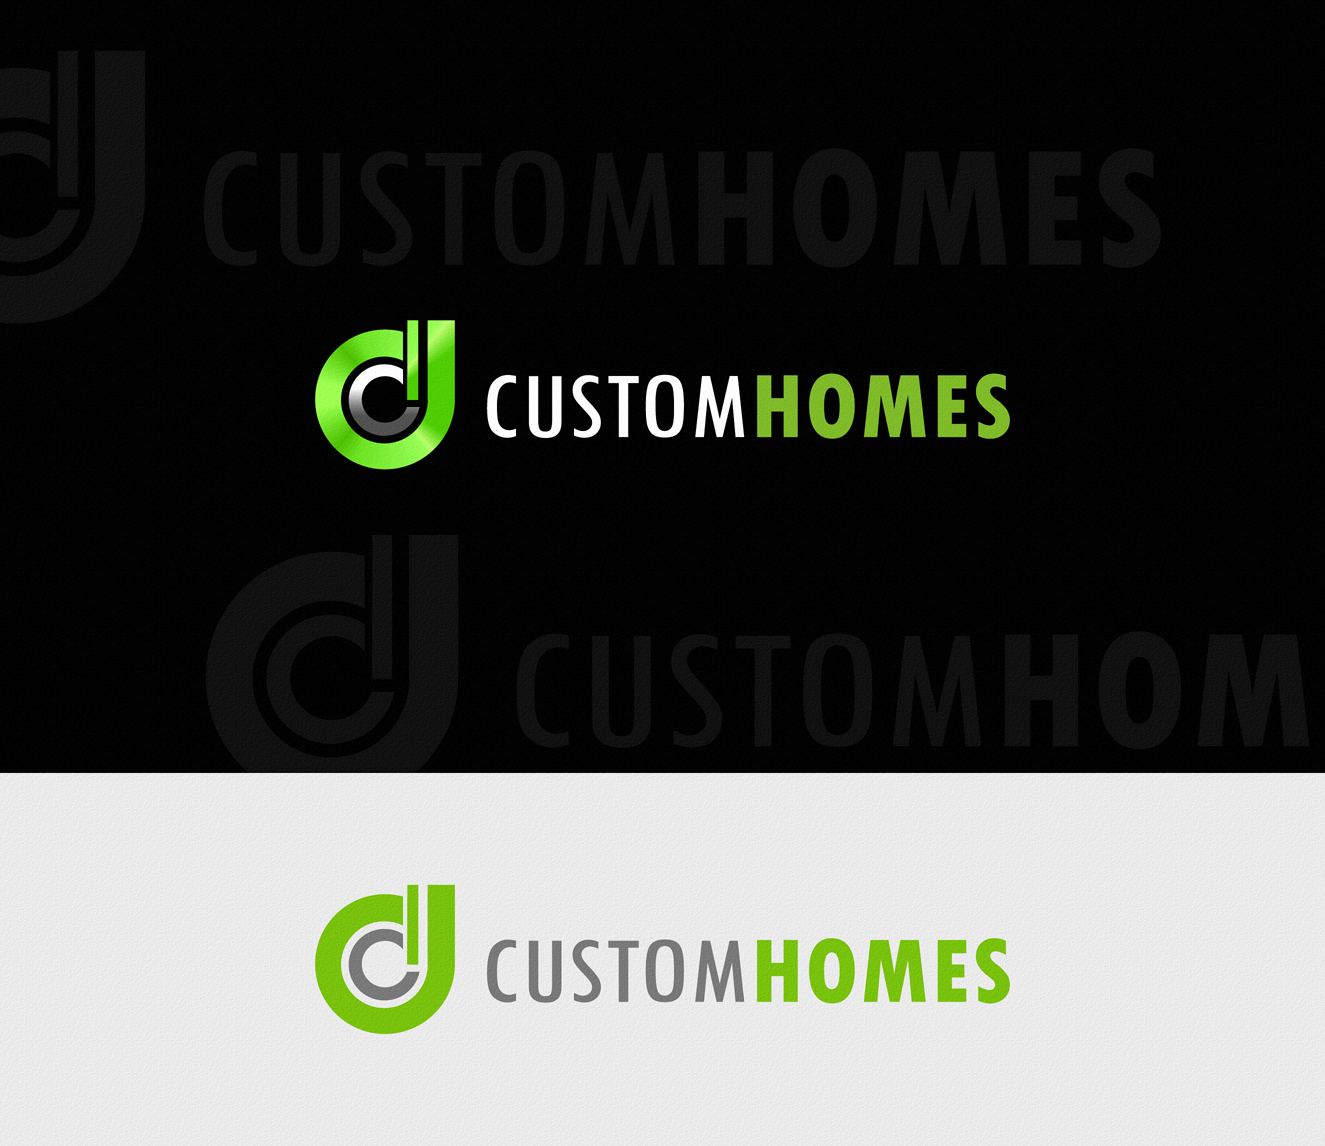 Logo Design by Private User - Entry No. 188 in the Logo Design Contest Creative Logo Design for DC Custom Homes.